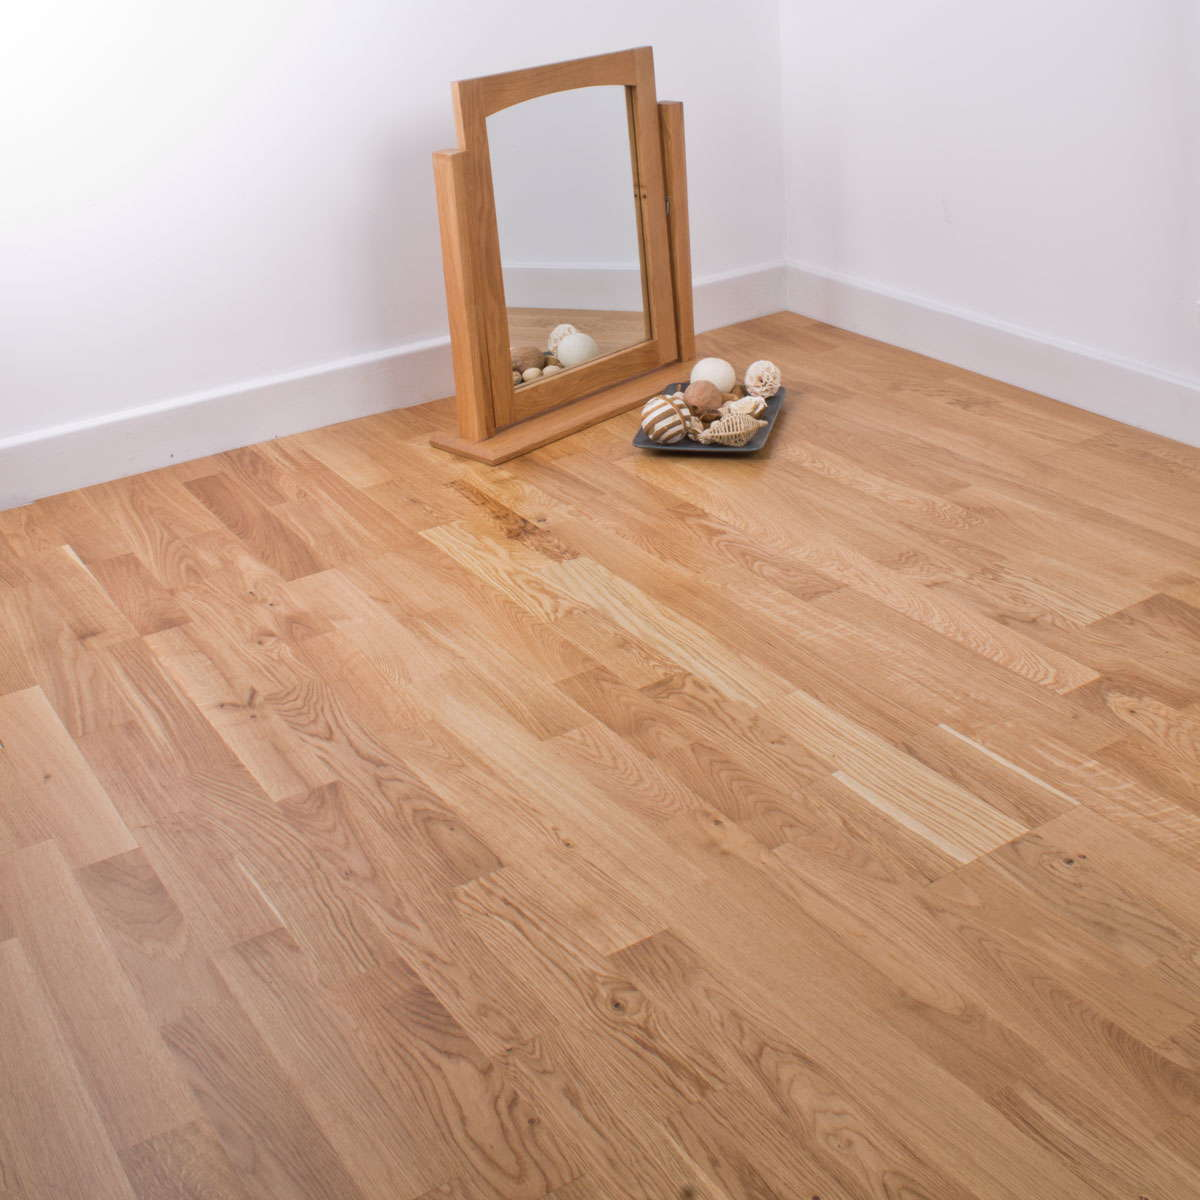 Natura oak kerry engineered wood flooring for Engineered oak flooring